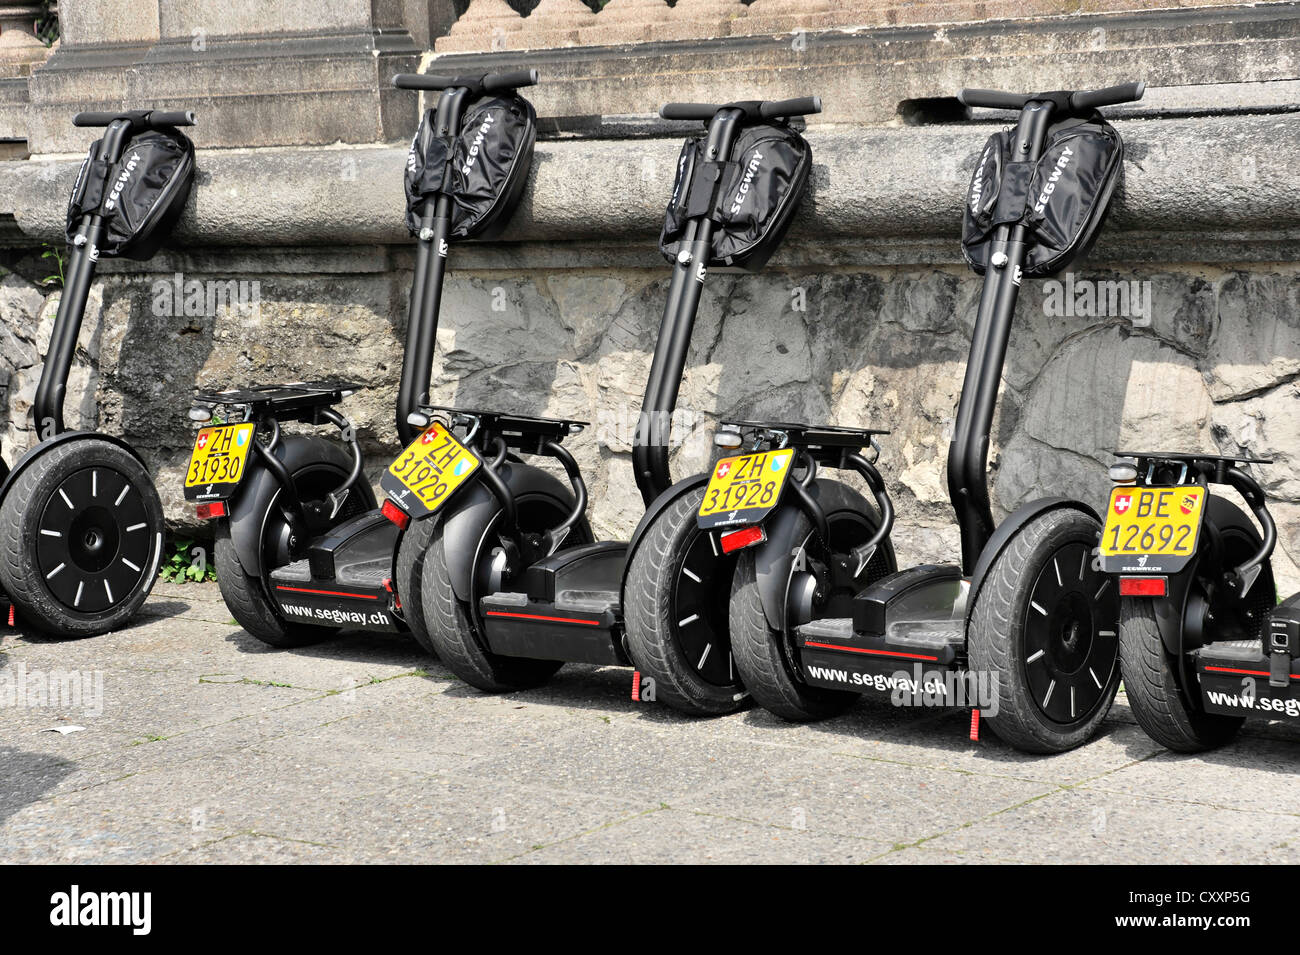 Parked segways, Bahnhofstrasse, Zurich, canton of Zurich, Switzerland, Europe - Stock Image